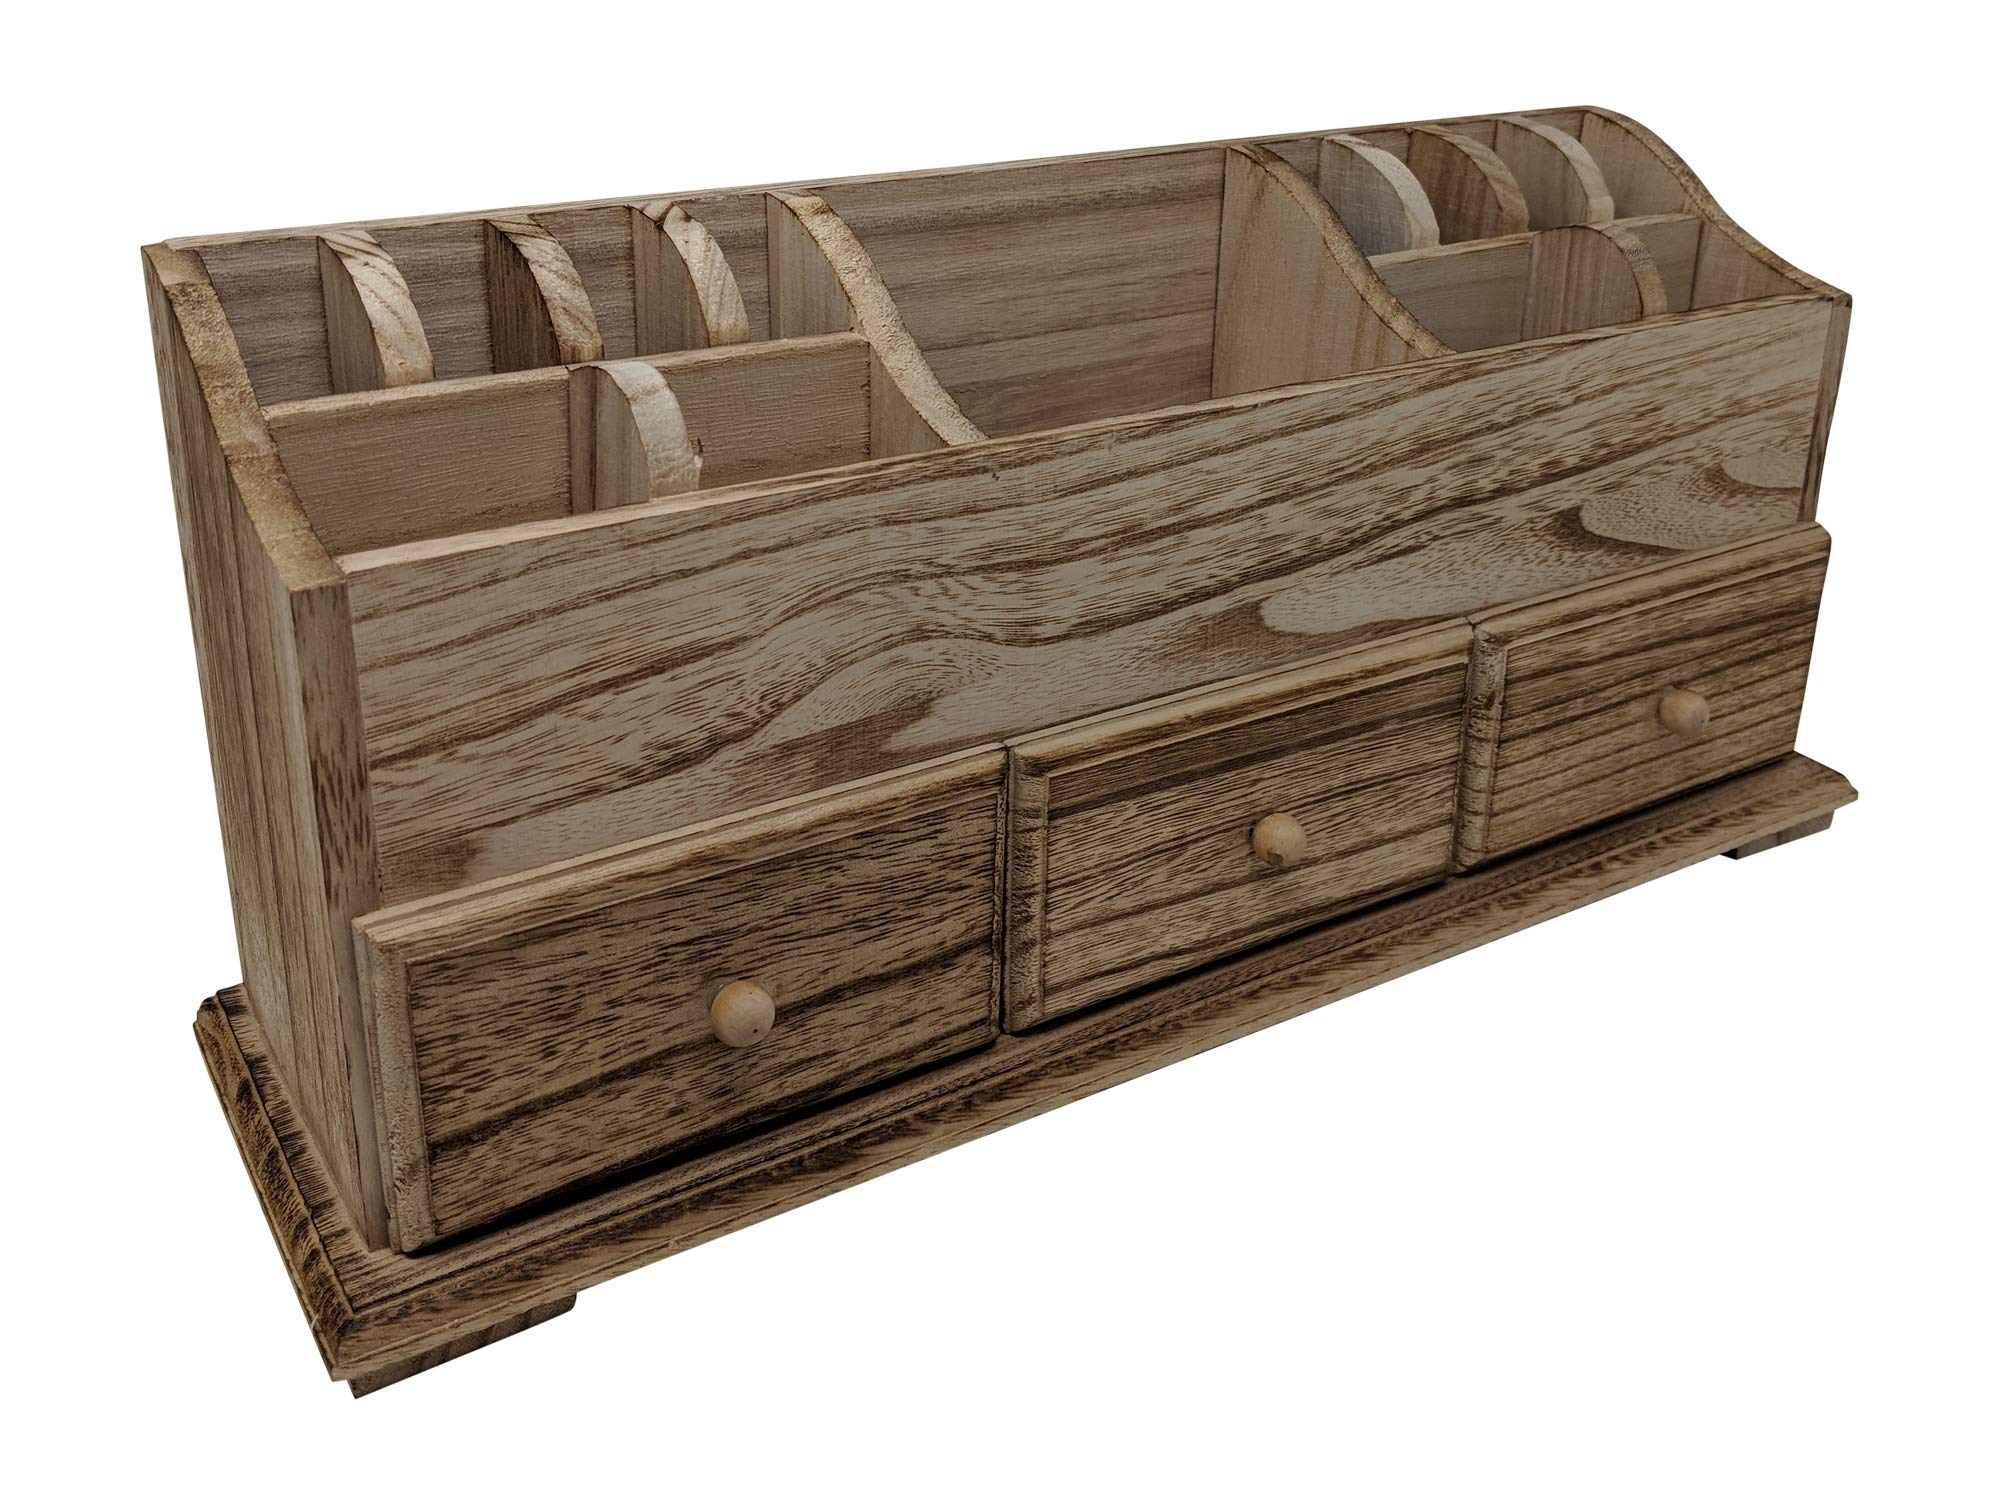 Gianna's Home Rustic Farmhouse Desk 3 Drawer Wooden Vanity Makeup Beauty Jewelry Storage Organizer (Torched Wood)